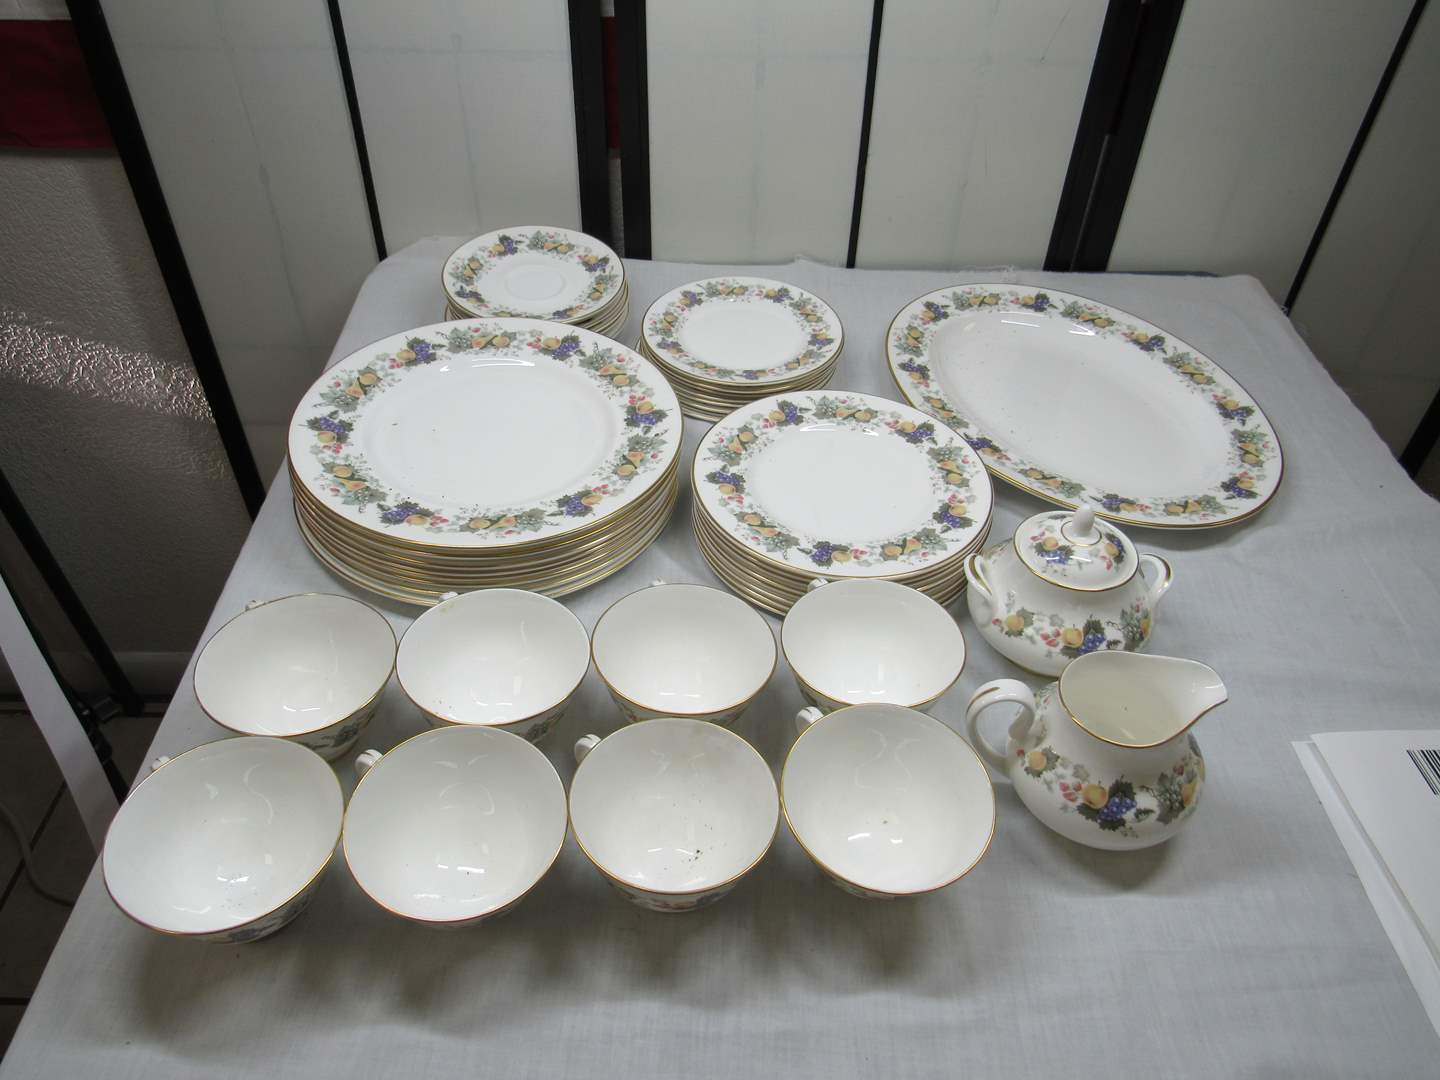 Lot # 2  Great set of Royal Doulton Dishes (Ravenna pattern) excellent condition (main image)